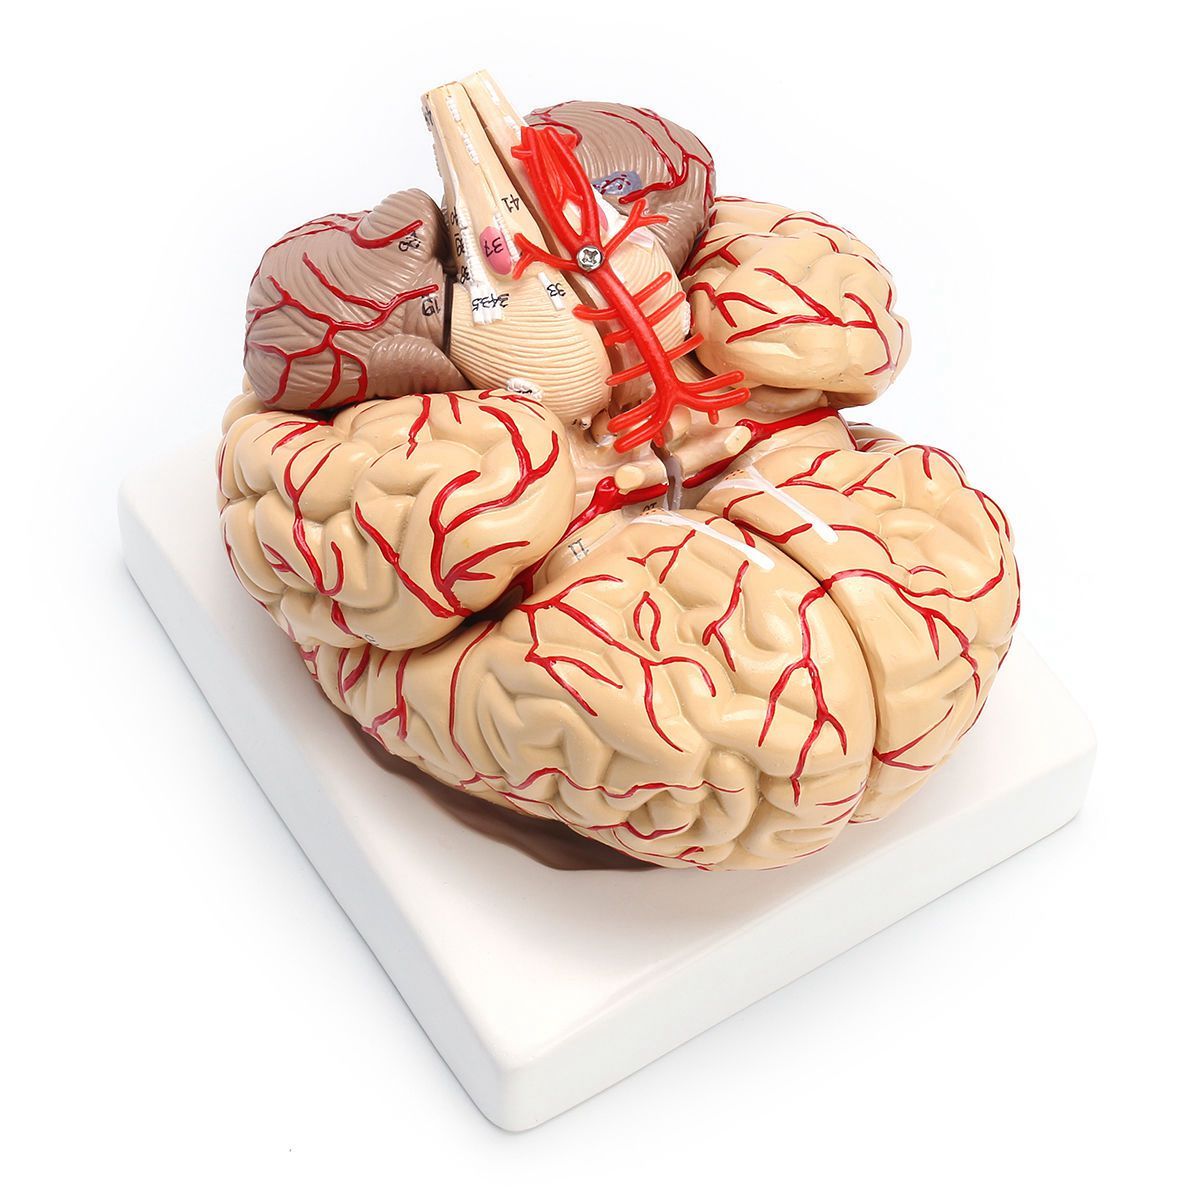 1 1 Life Size Human Anatomical Brain Pro Dissection